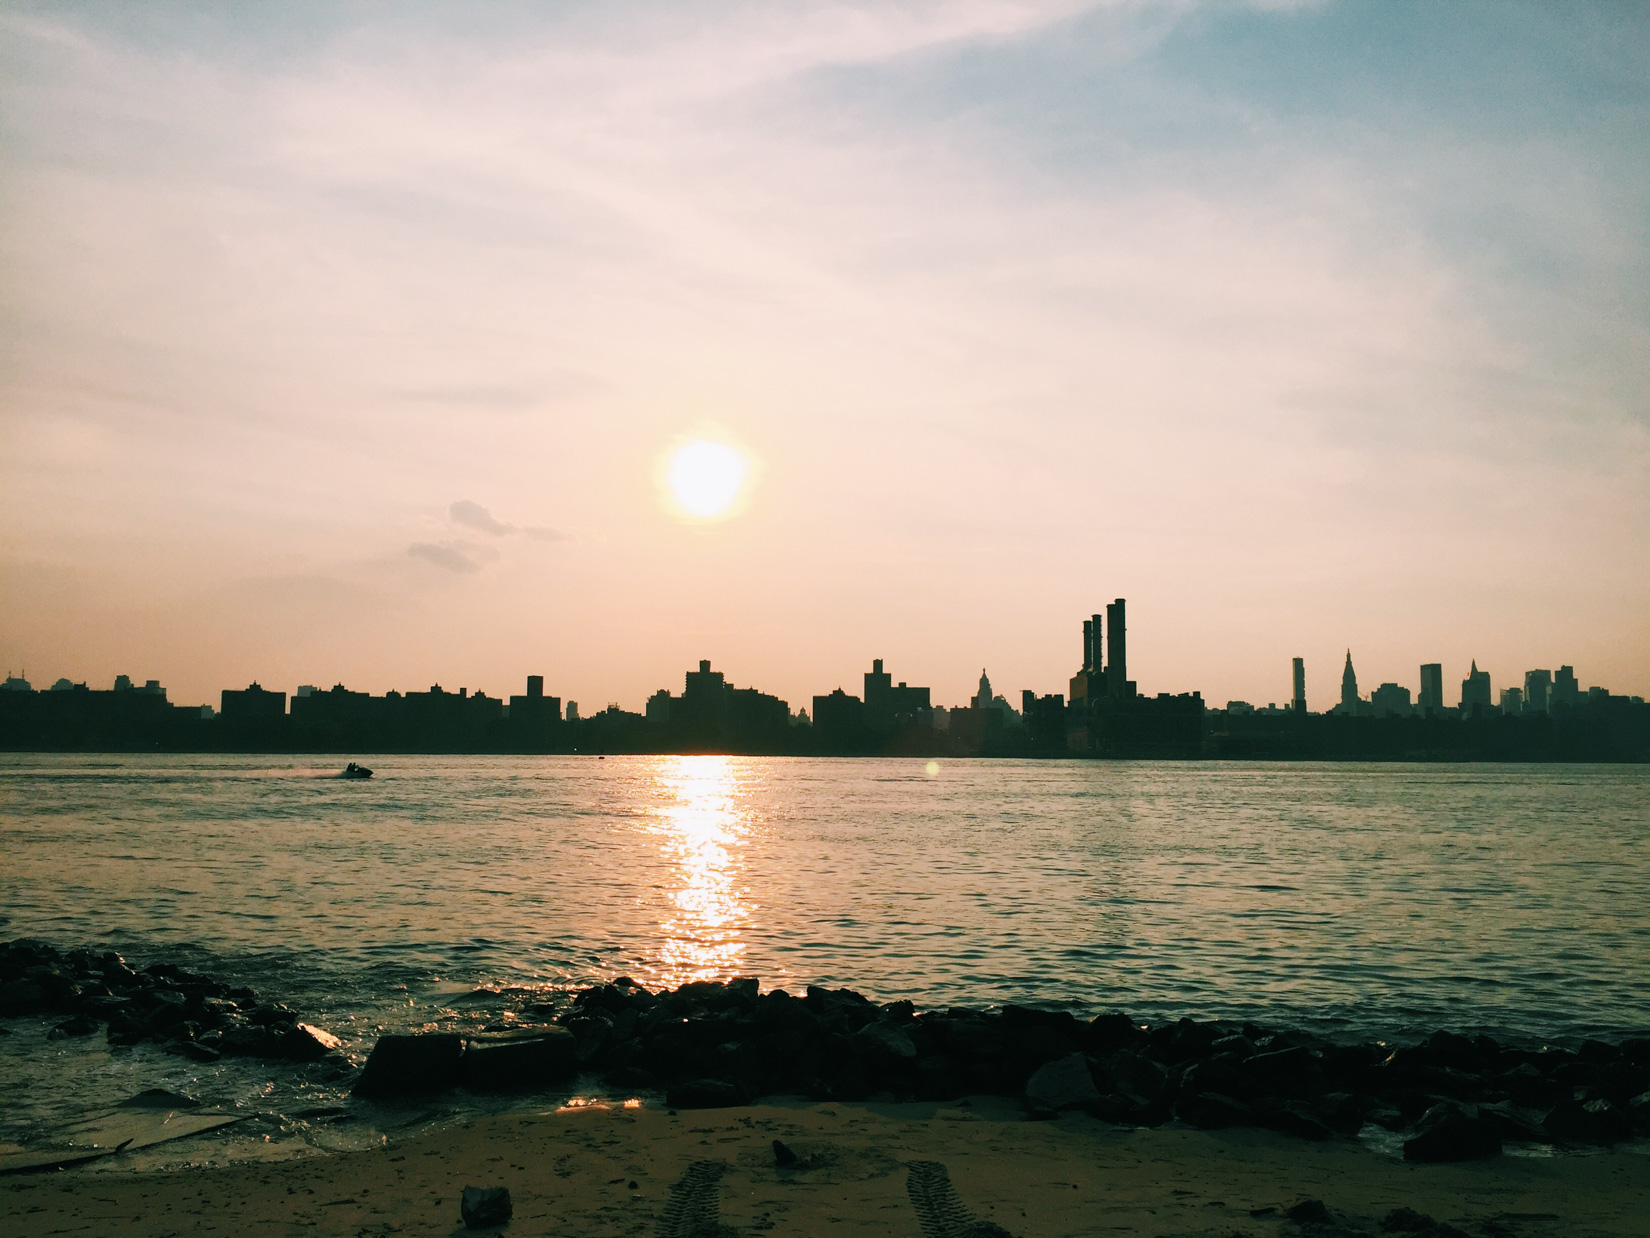 Sunset Overlooking Cityscape and Beach